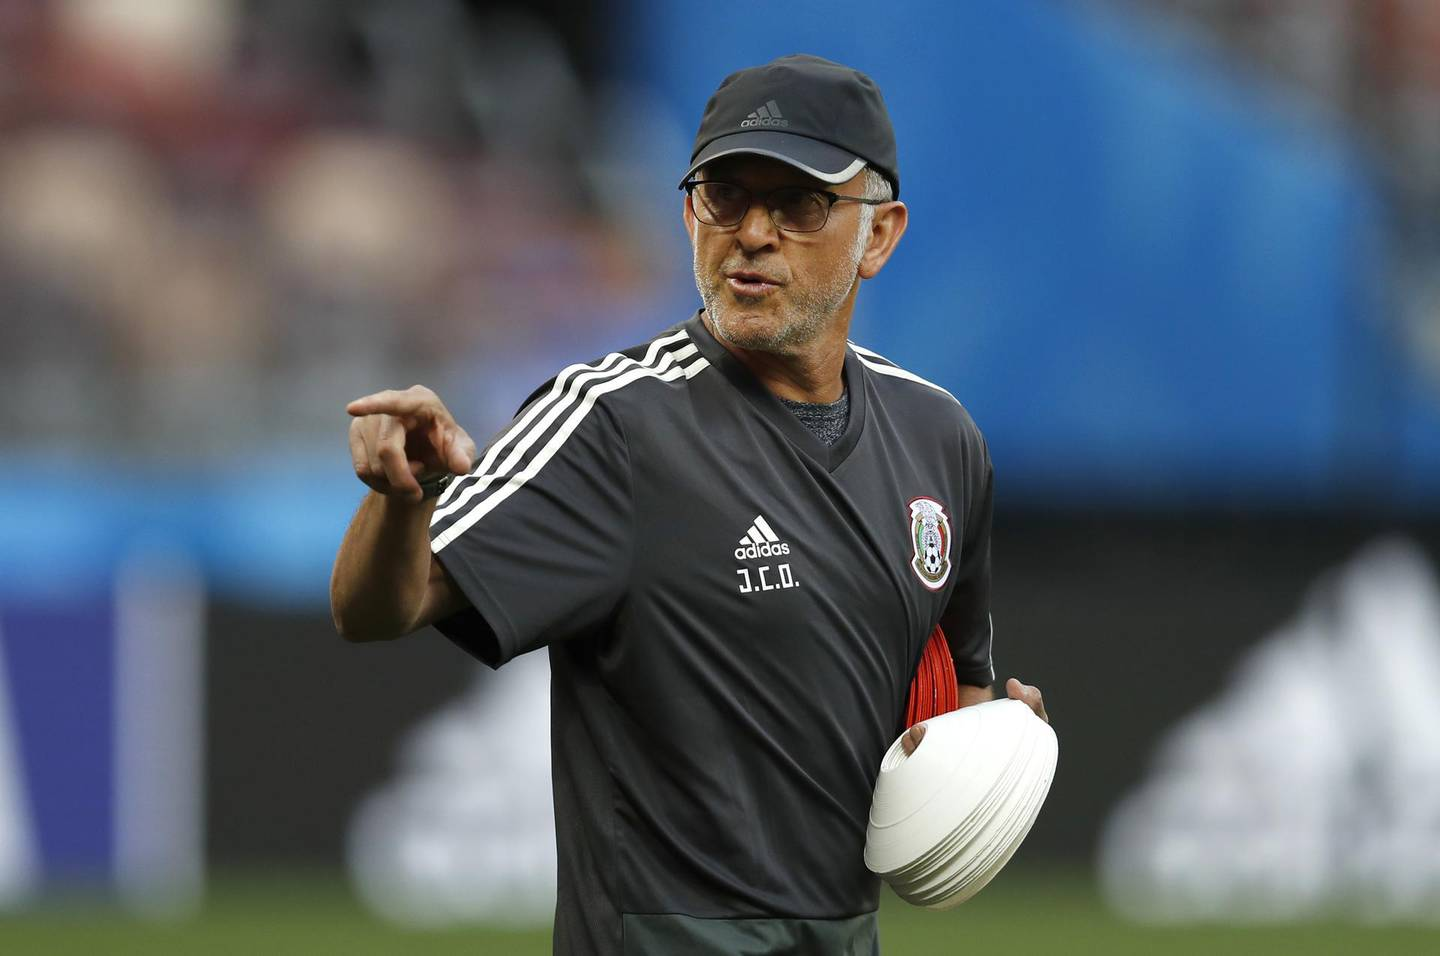 Mexico head coach Juan Carlos Osorio gives instructions to his players during Mexico's official training on the eve of the group F match between Germany and Mexico at the 2018 soccer World Cup in the Luzhniki Stadium in Moscow, Russia, Saturday, June 16, 2018. (AP Photo/Eduardo Verdugo)